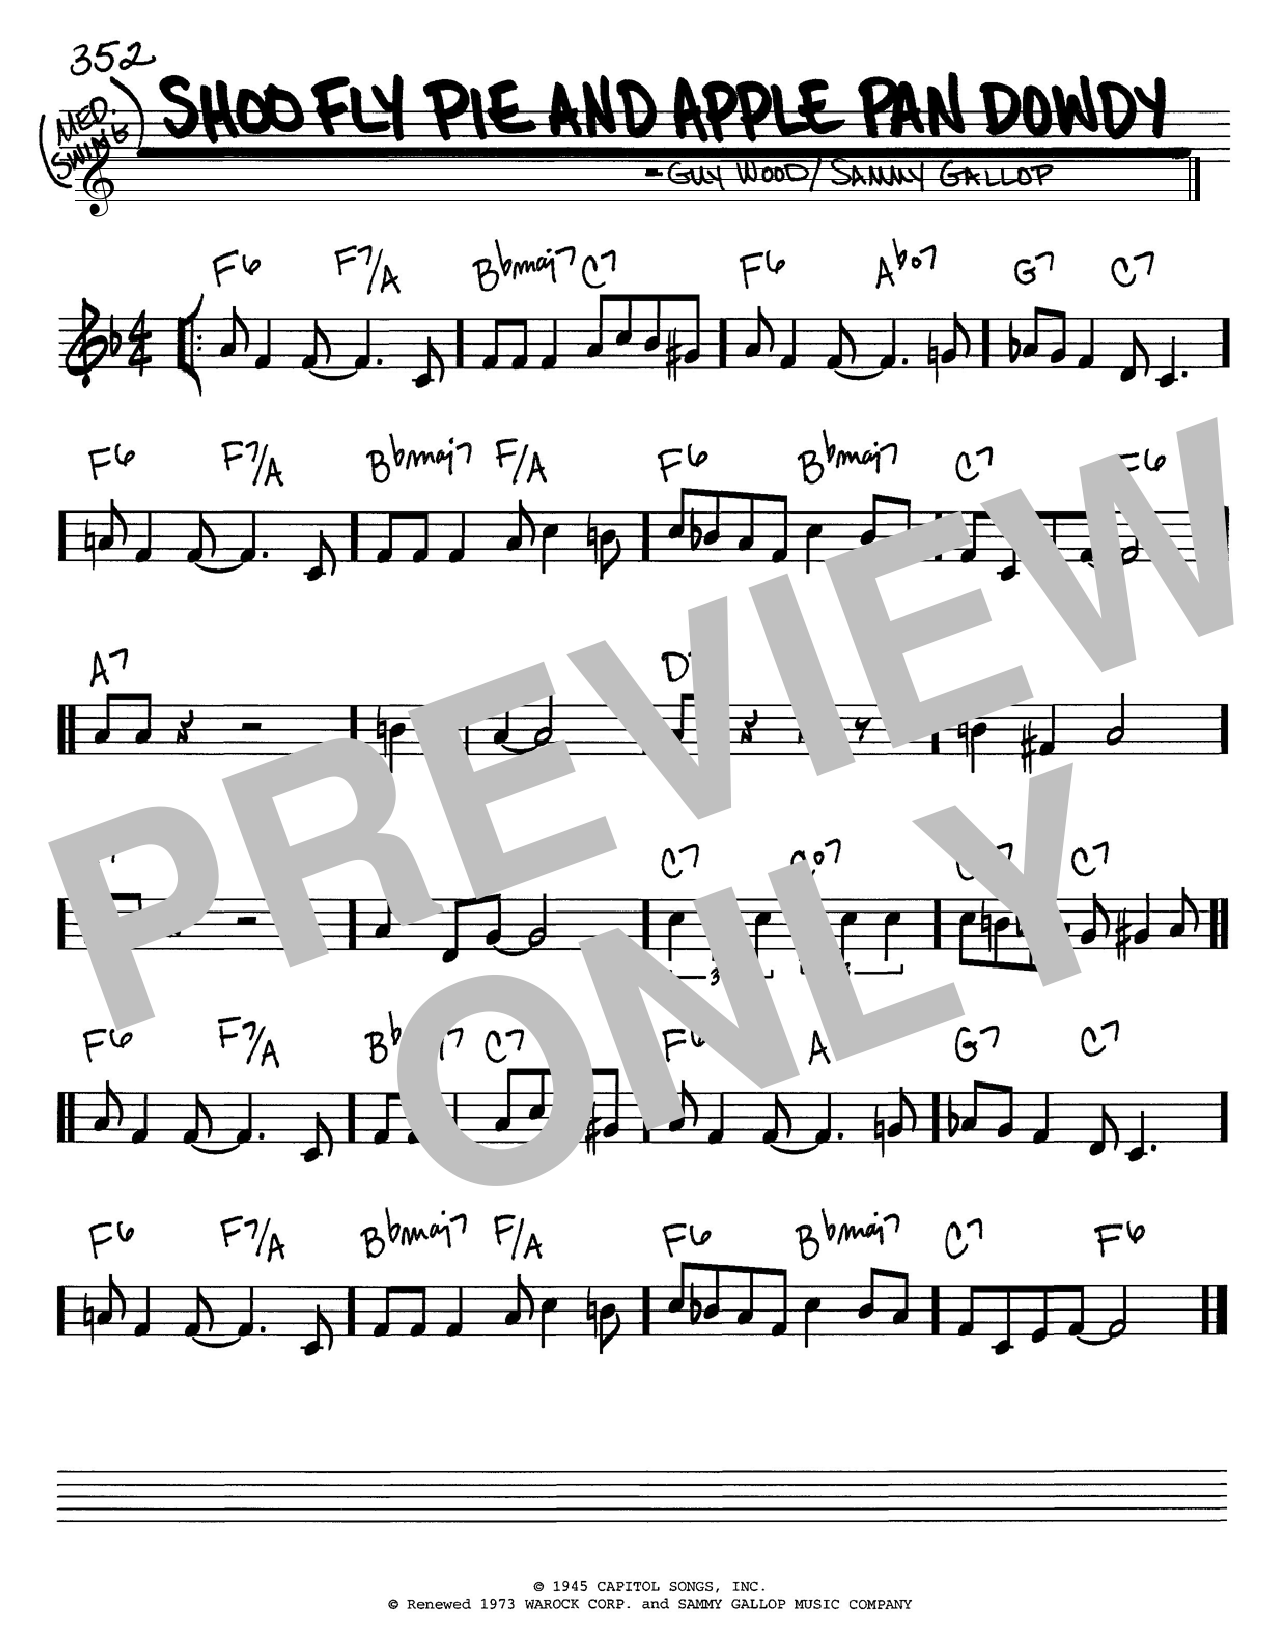 Sammy Gallop Shoo Fly Pie And Apple Pan Dowdy sheet music notes printable PDF score